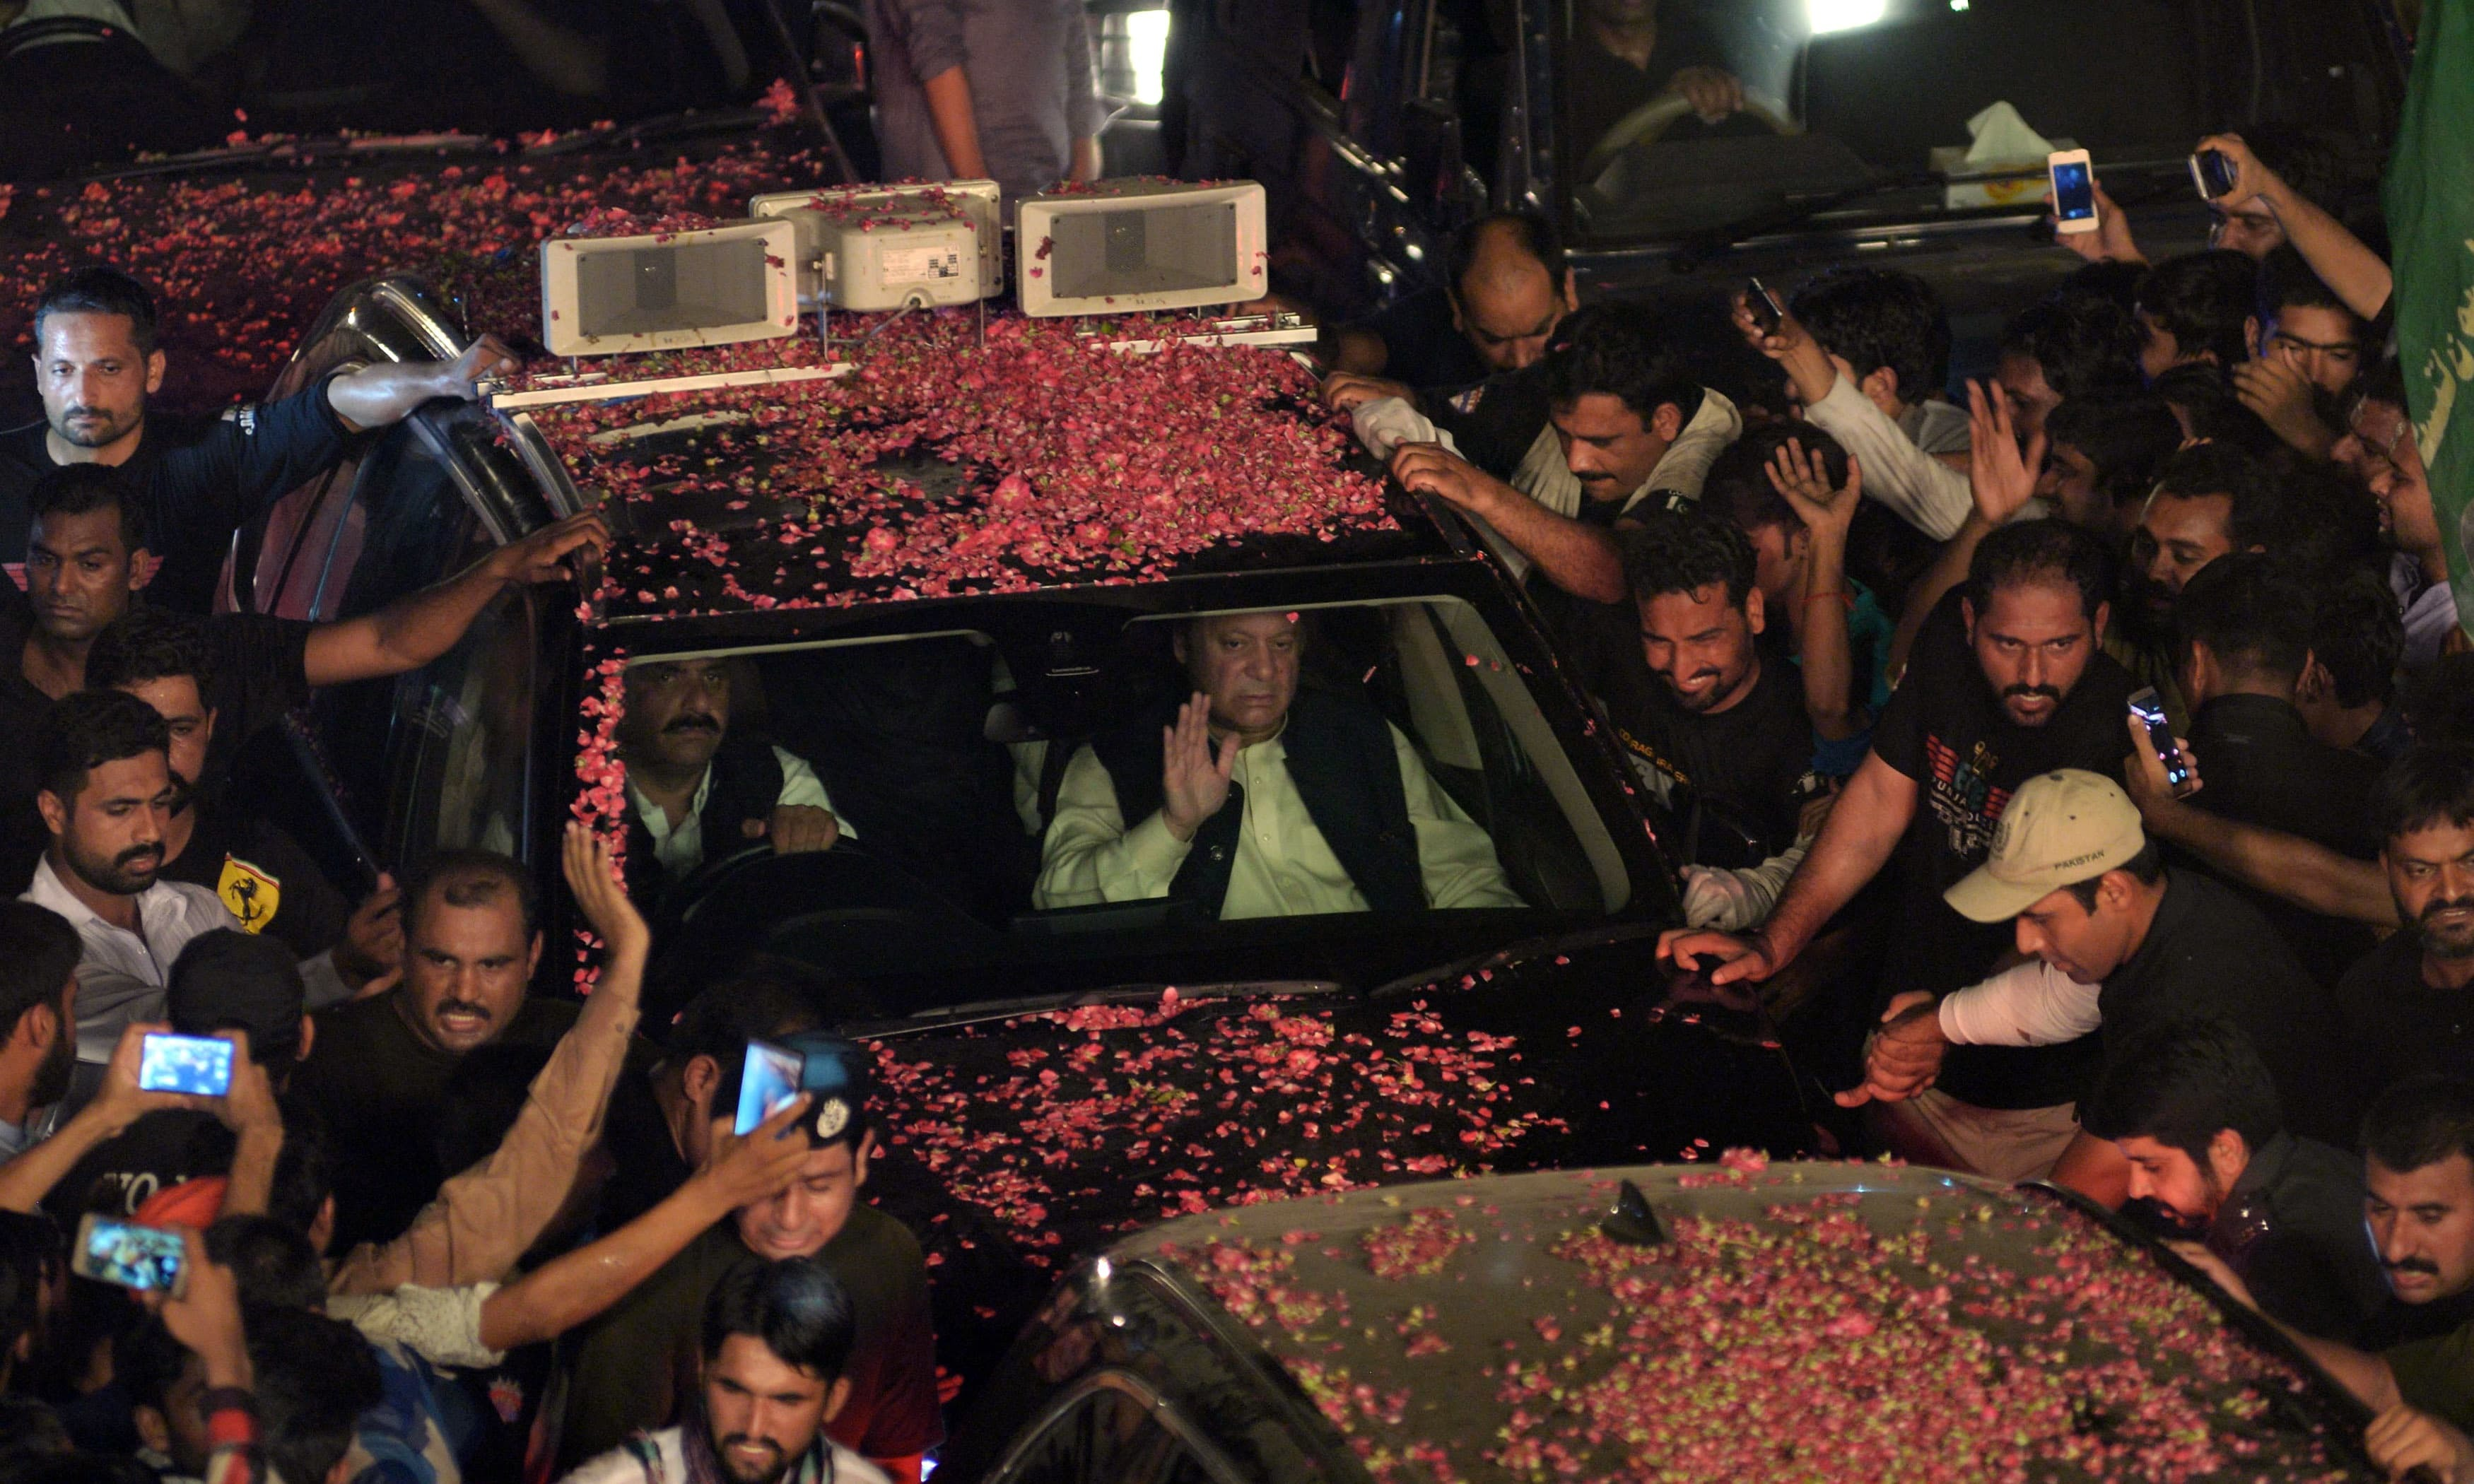 Pakistani ousted prime minister Nawaz Sharif (C) waves as his convoy passes supporters during a rally on August 12, 2017 in Lahore. Pakistan's former Prime Minister Nawaz Sharif's defiant procession down the ancient Grand Trunk Road after his ouster August 12 arrived in the outskirts of his eastern stronghold of Lahore as thousands rallied support. Photo:AFP